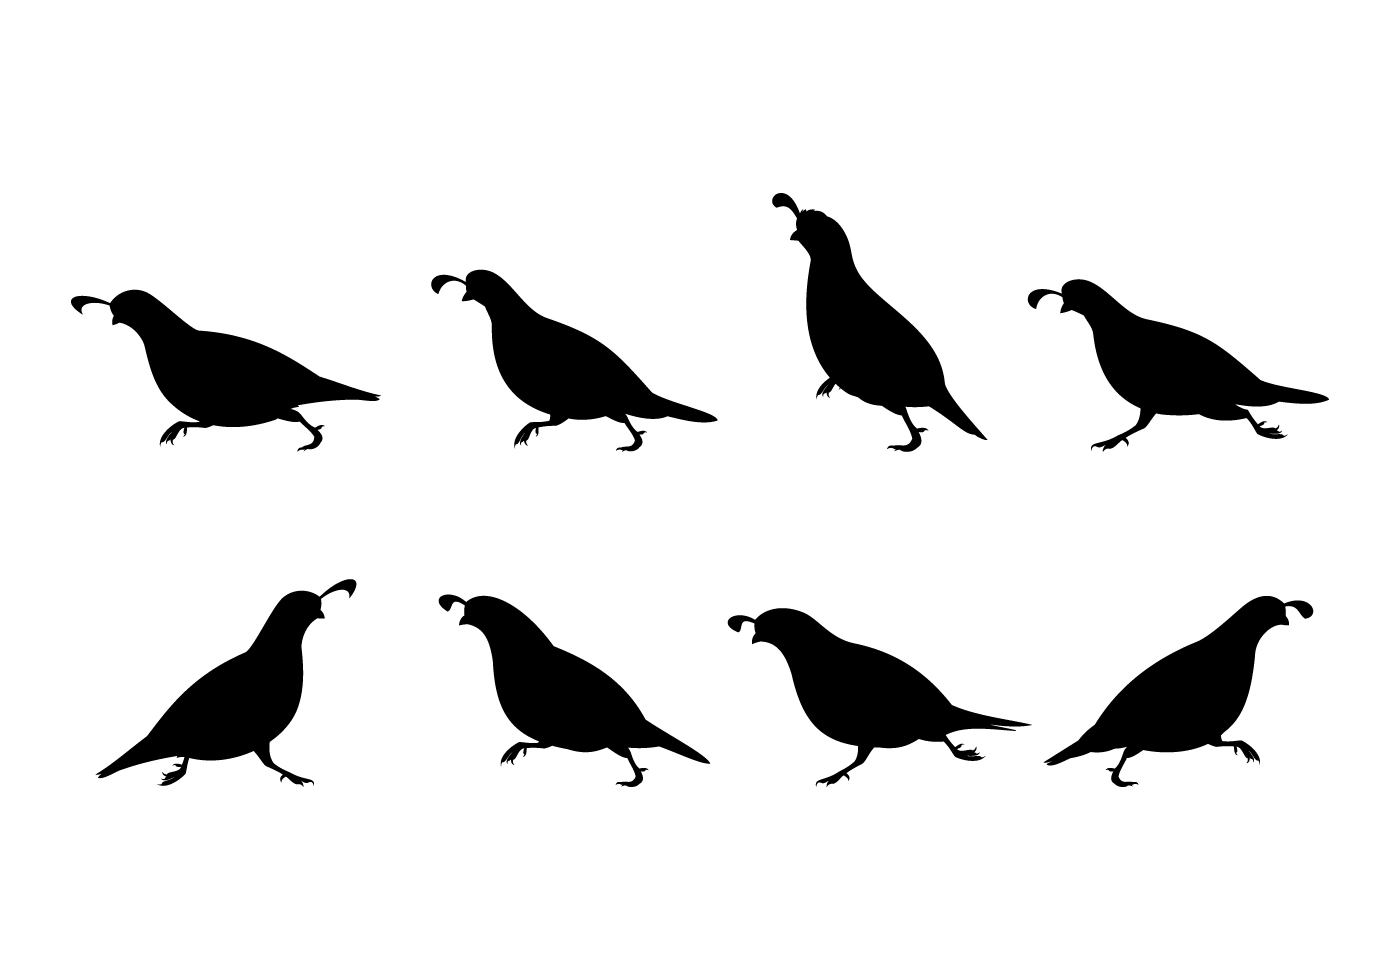 172527 Running Quail Silhouette Free Vector also Saturday All American Boots additionally Pineapple Black And White further 2 besides . on turkey food